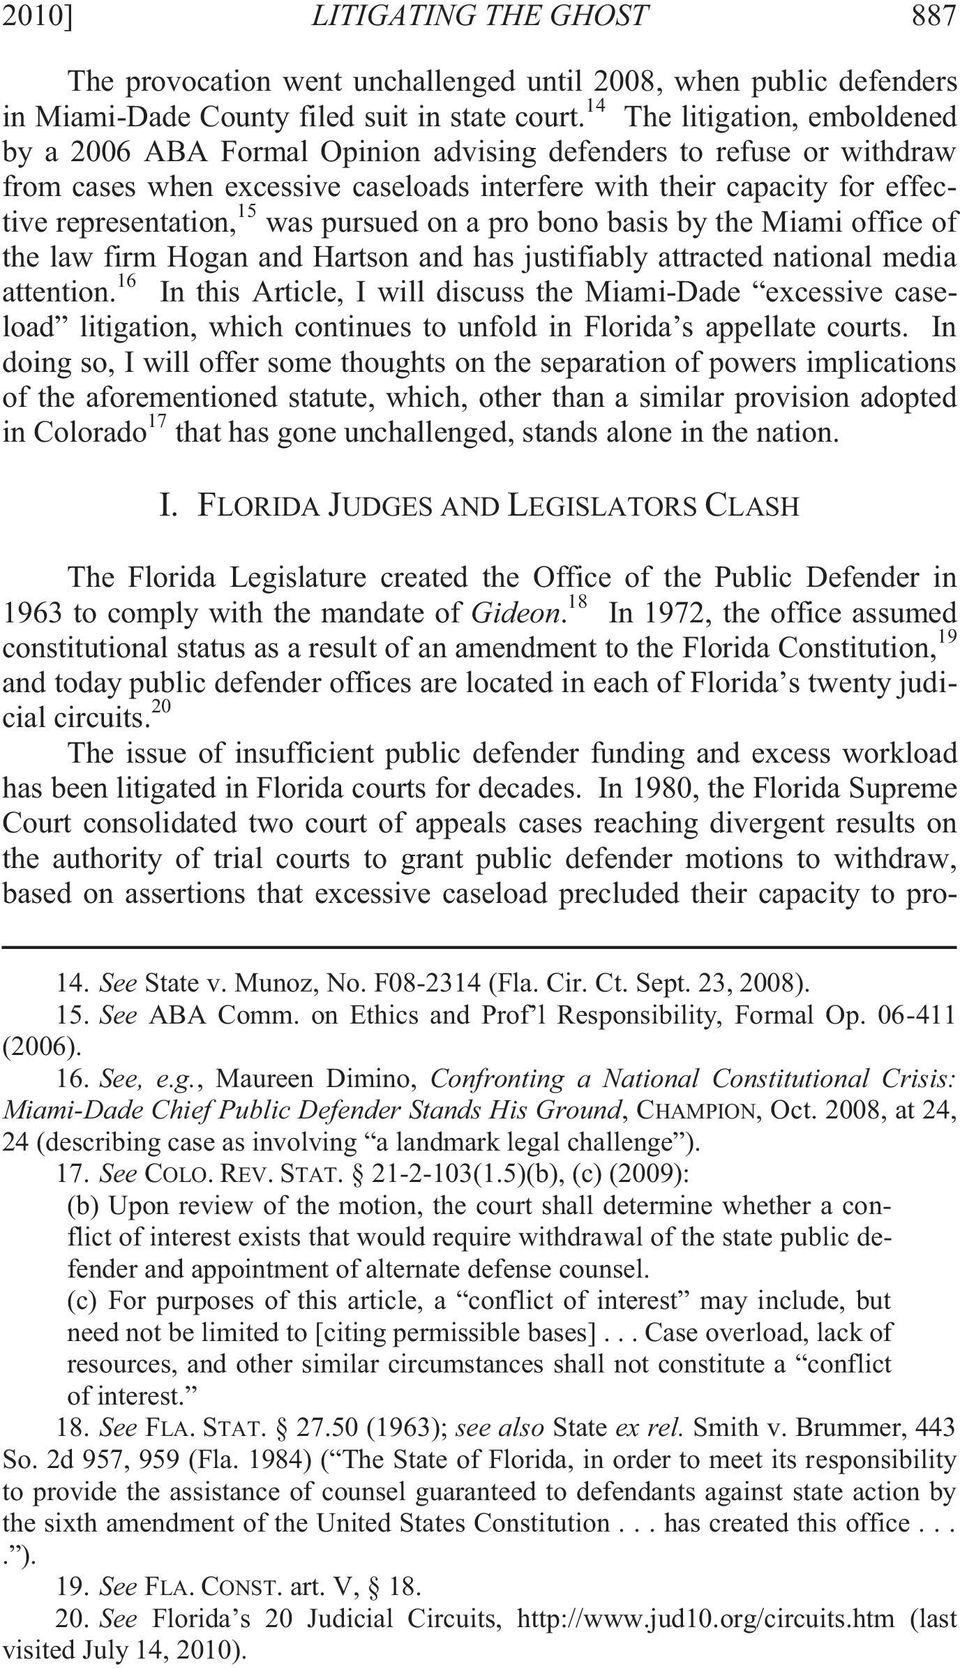 was pursued on a pro bono basis by the Miami office of the law firm Hogan and Hartson and has justifiably attracted national media attention.